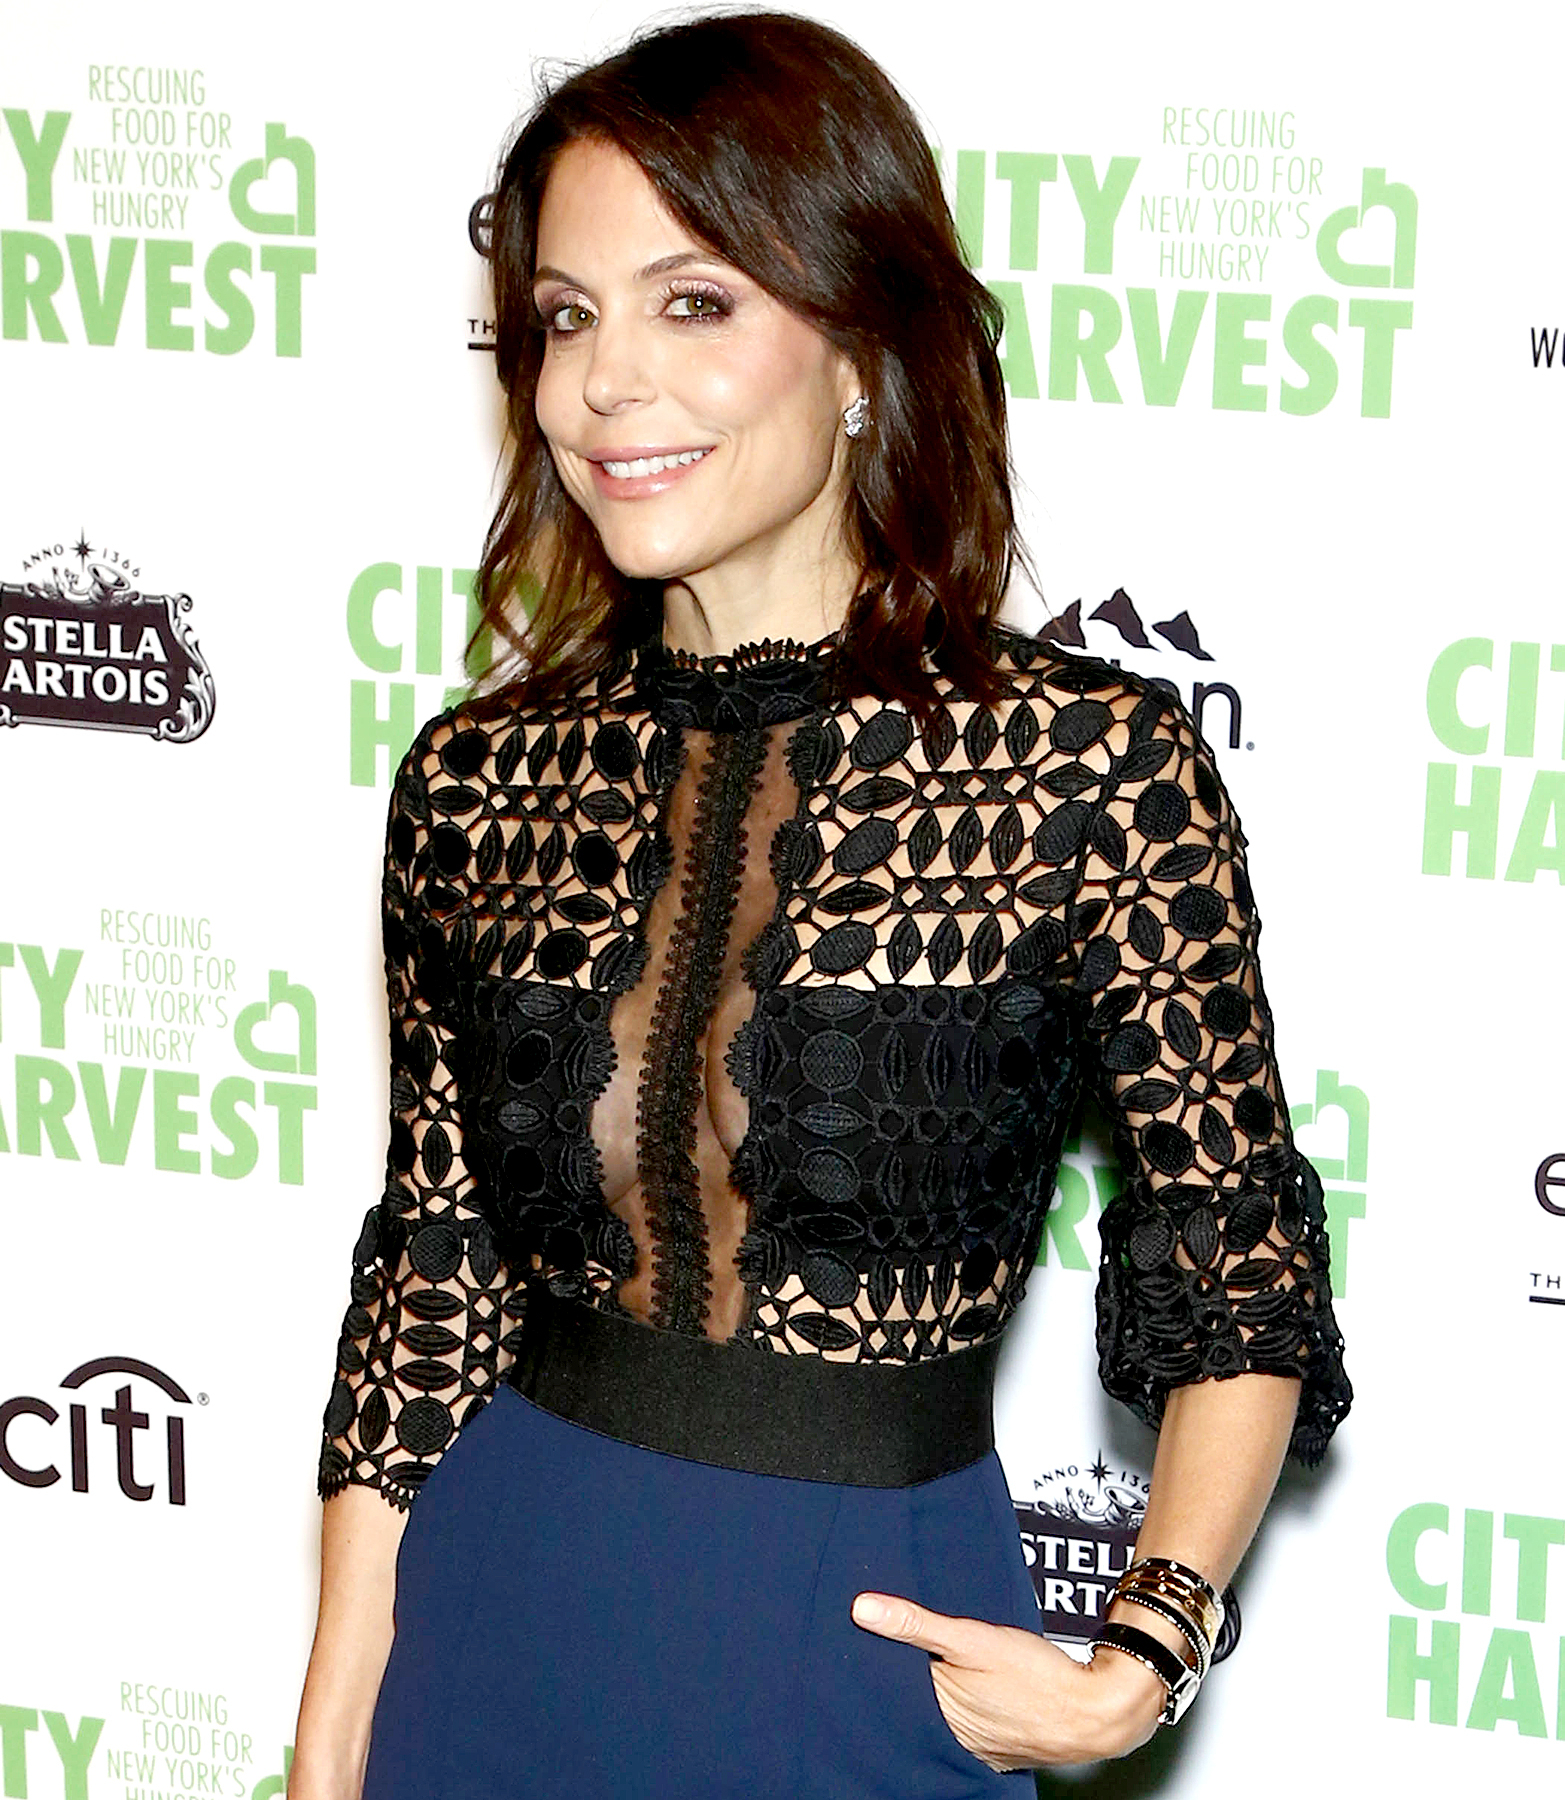 Bethenny Frankel attends the 23rd Annual Gala Evening of Practical Magic honoring Lise & Michael Evans, Chelsea Clinton, and Chef Geoffrey Zakarian in New York, NY on April 25, 2017.